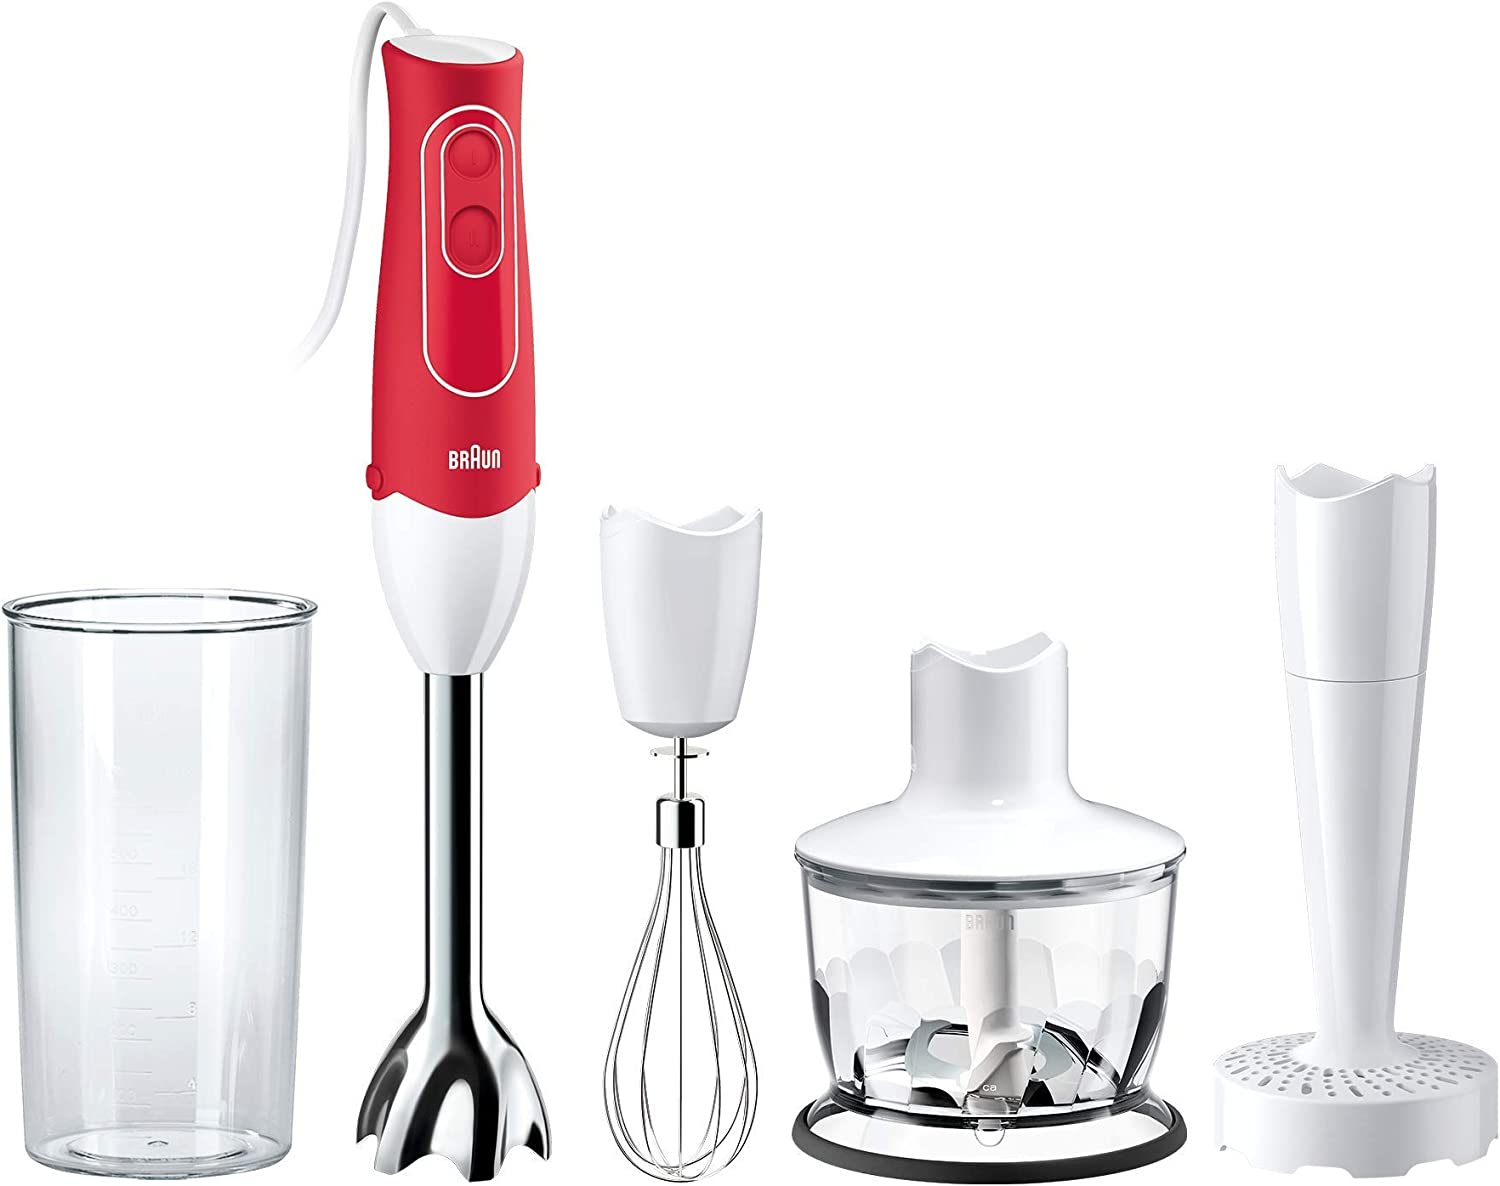 Braun MQ537R MultiQuick 5 Immersion Hand Blender Patented Technology - Powerful 350 Watt - Dual Speed - Includes Beaker, Whisk, 2-Cup Chopper, Masher, 536, Red (Renewed)